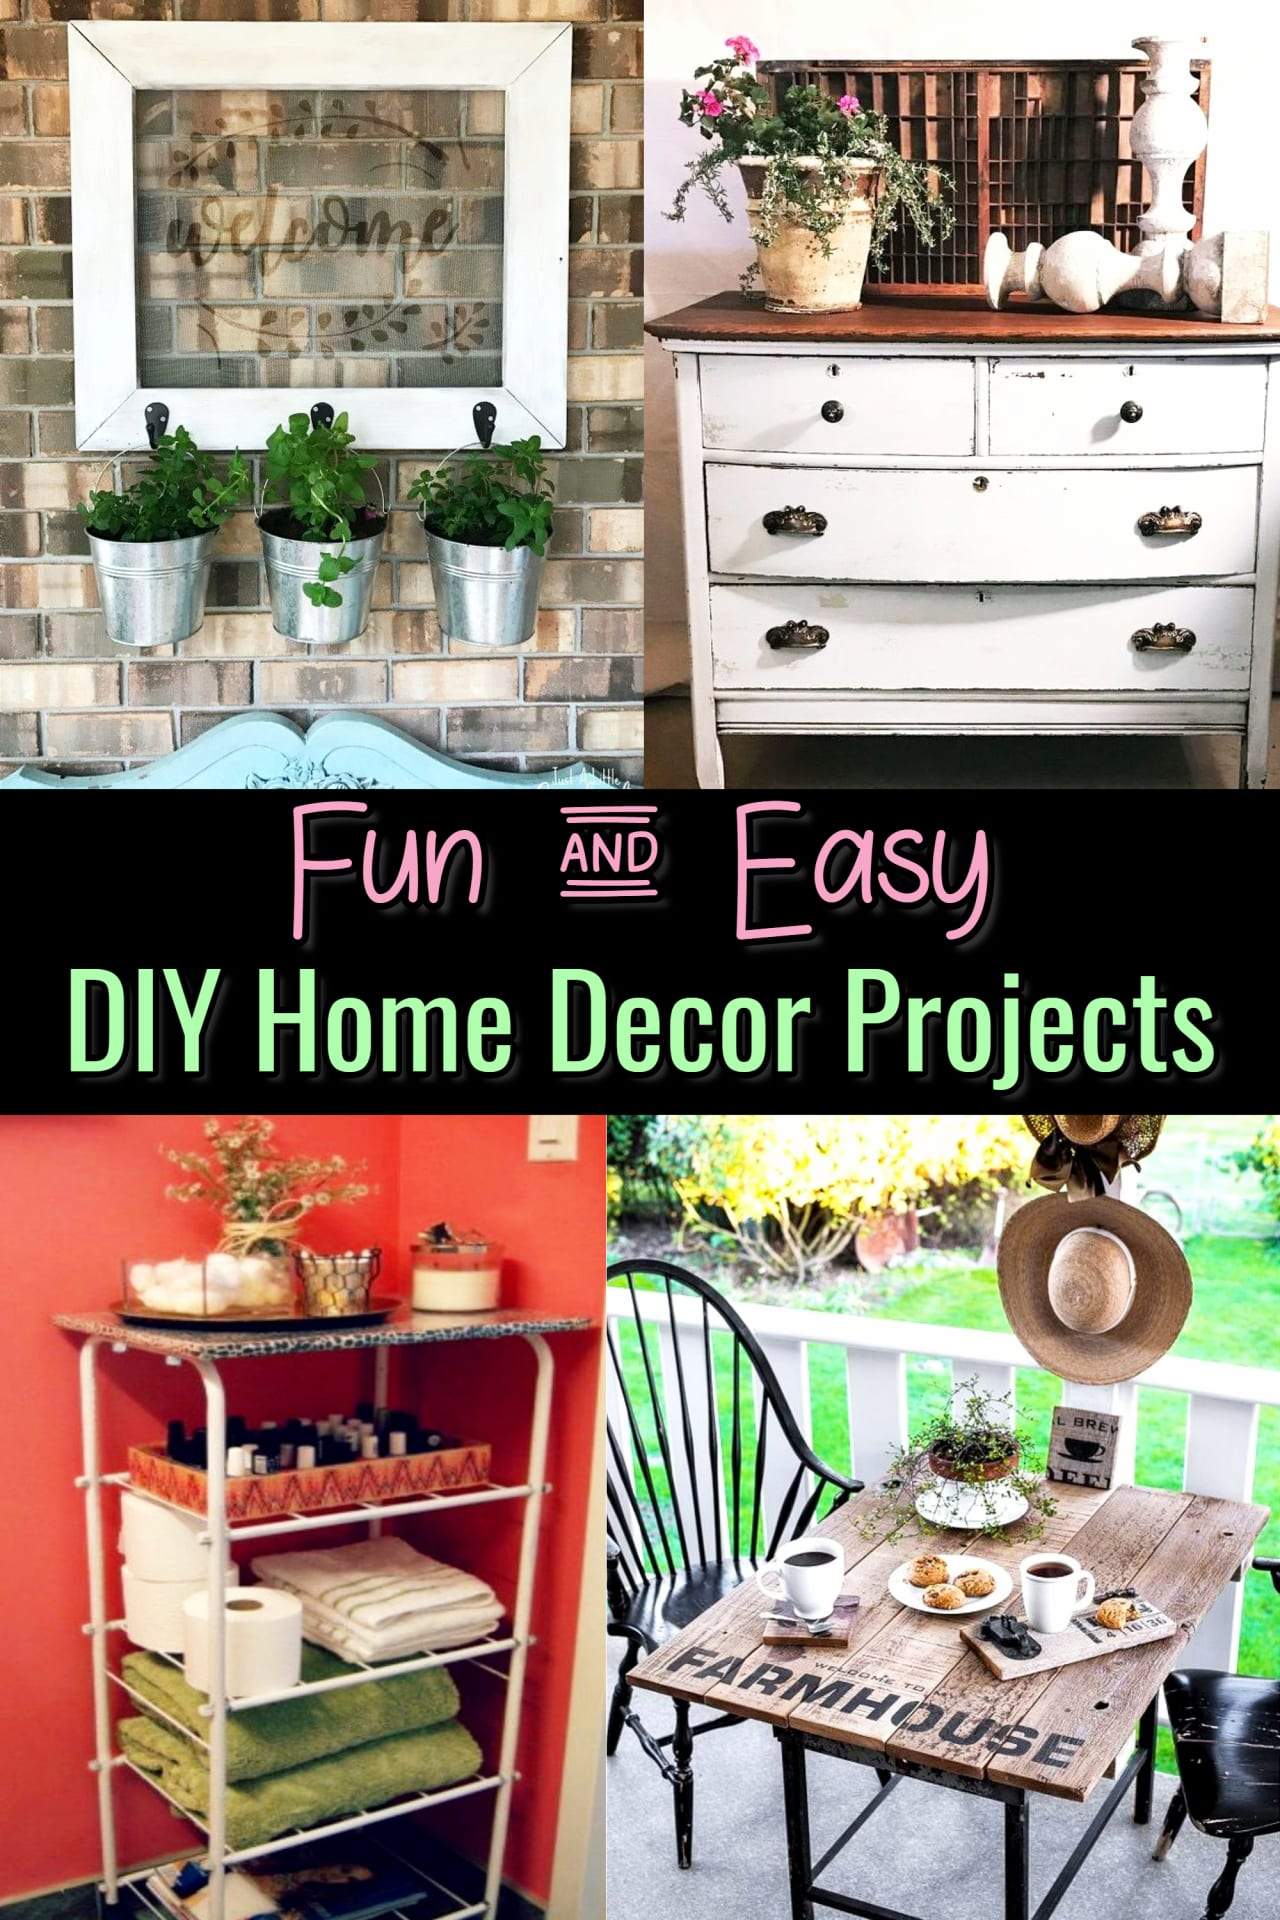 DIY Crafts For The Home Projects We Love